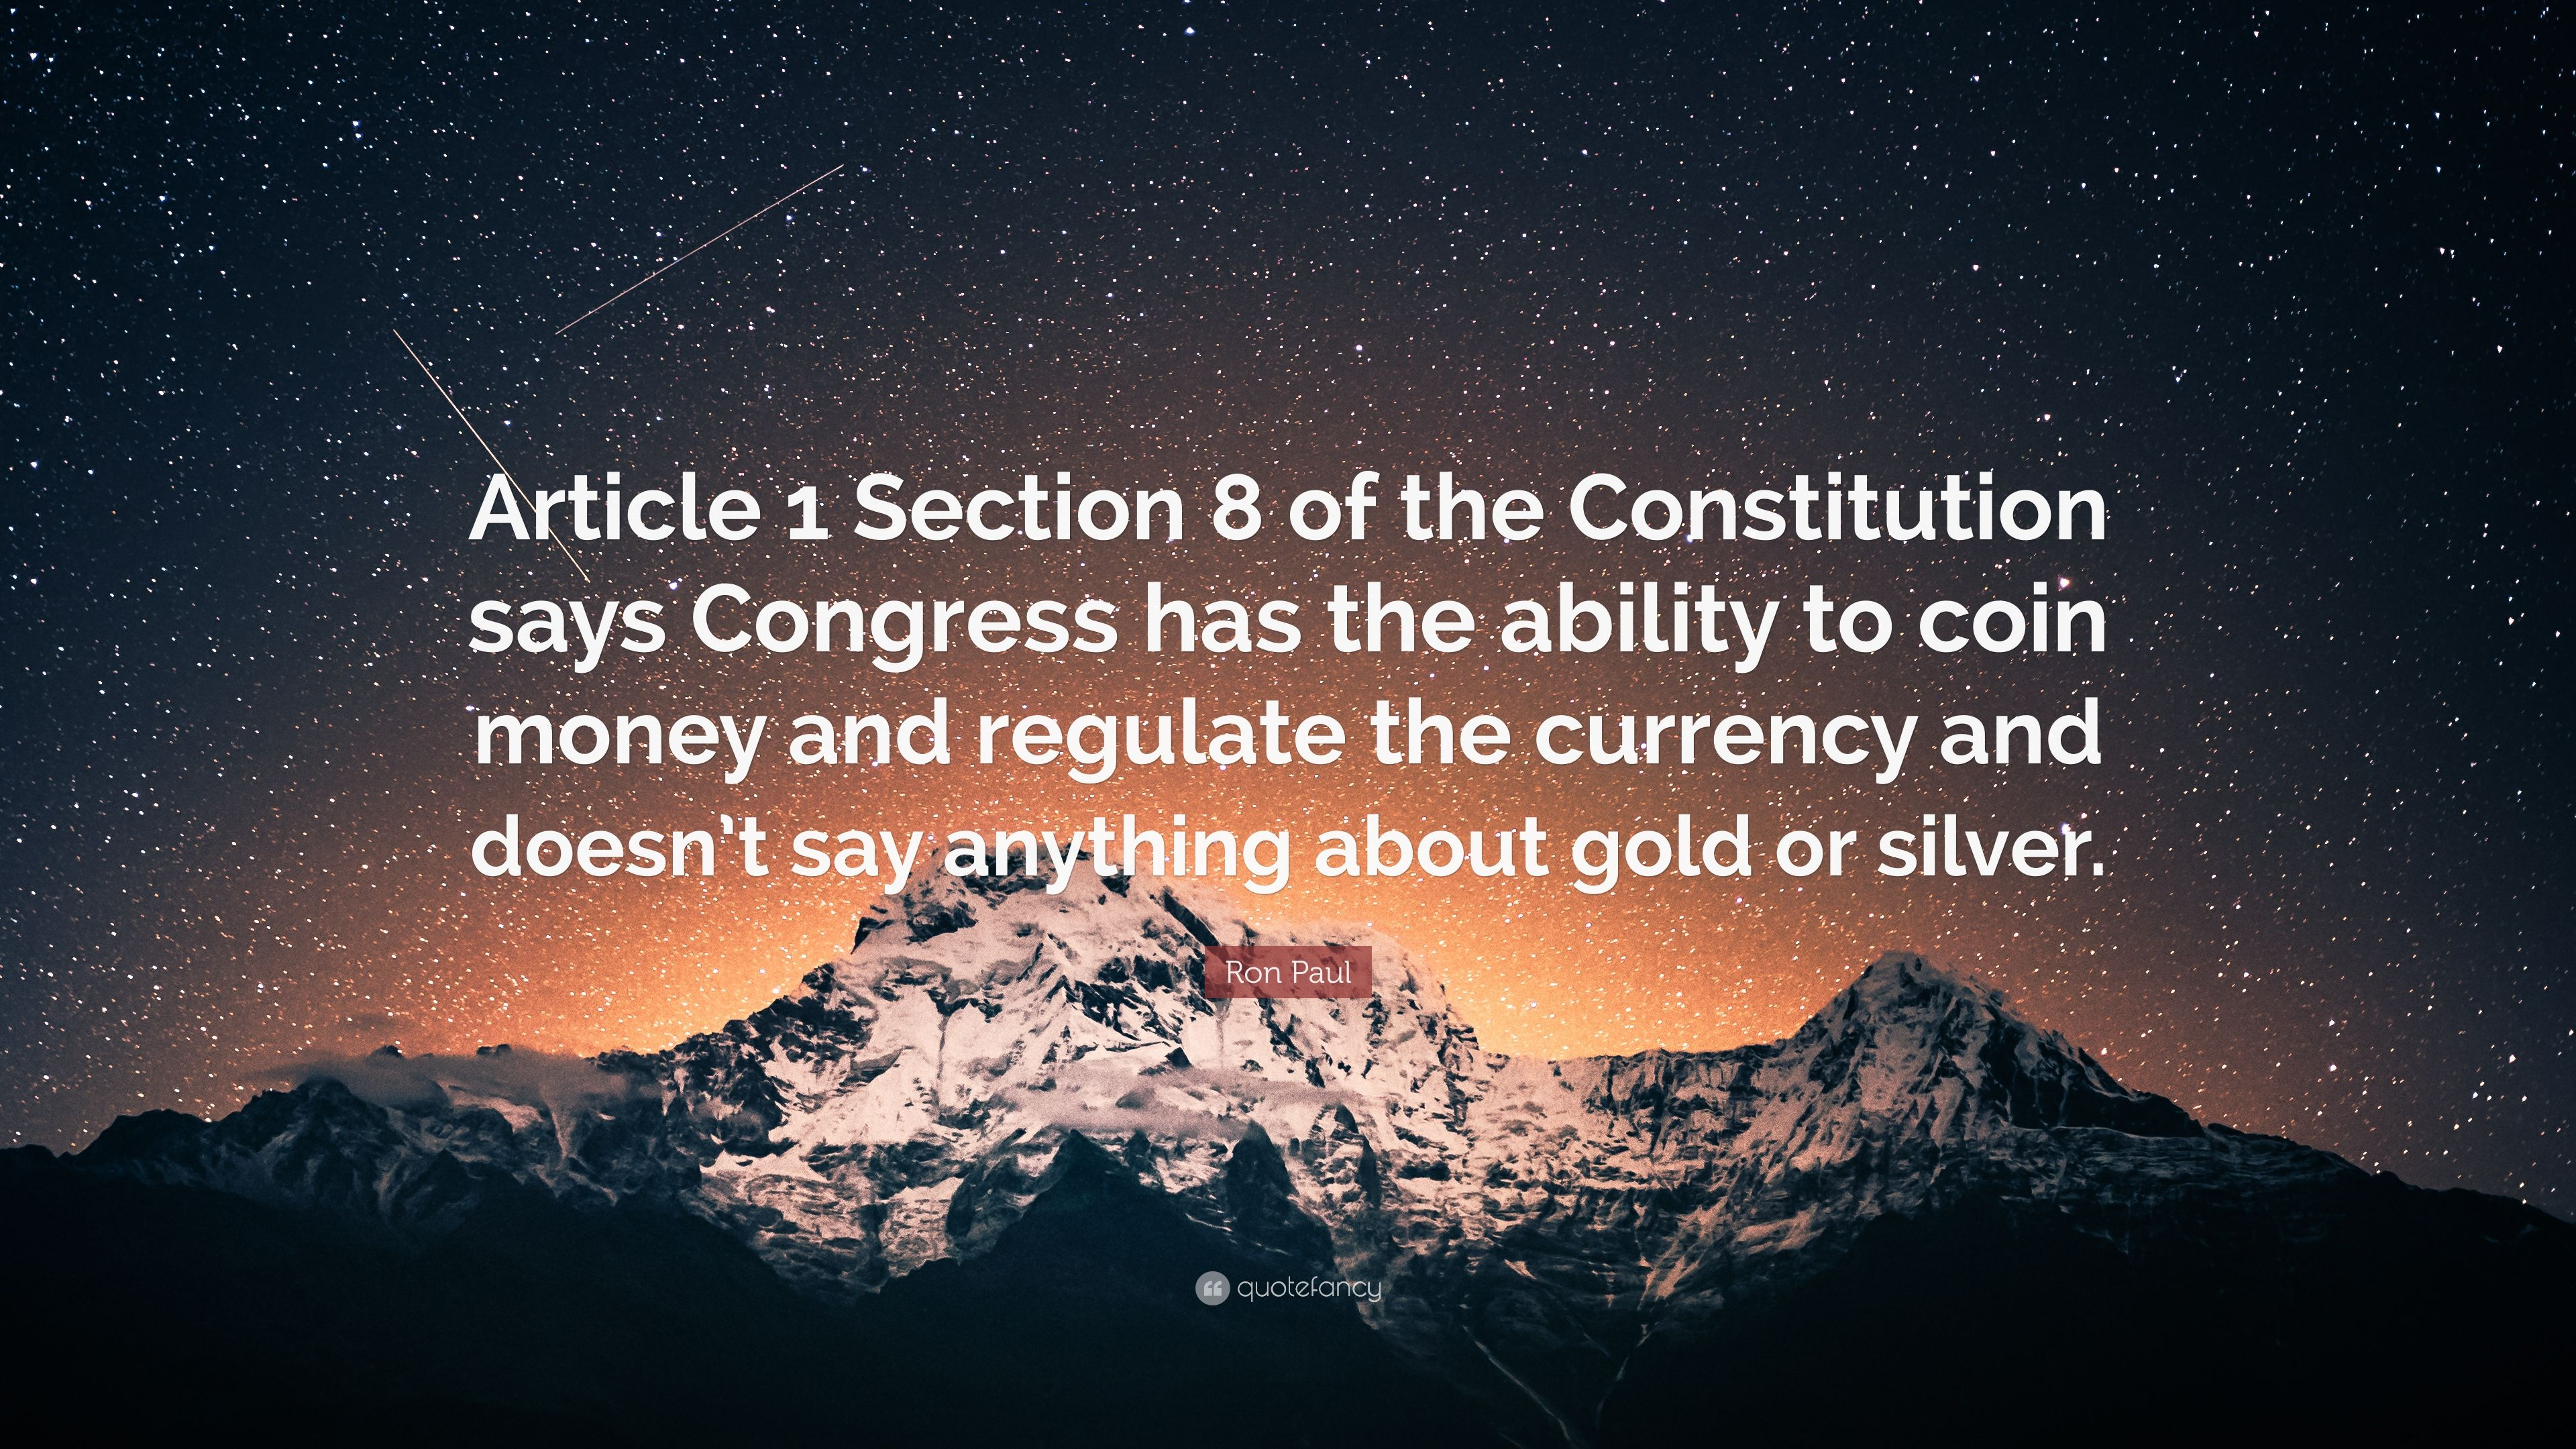 Ron Paul Quote Article 1 Section 8 Of The Constitution Says Congress Has The Ability To Coin Money And Regulate The Currency And Doesn